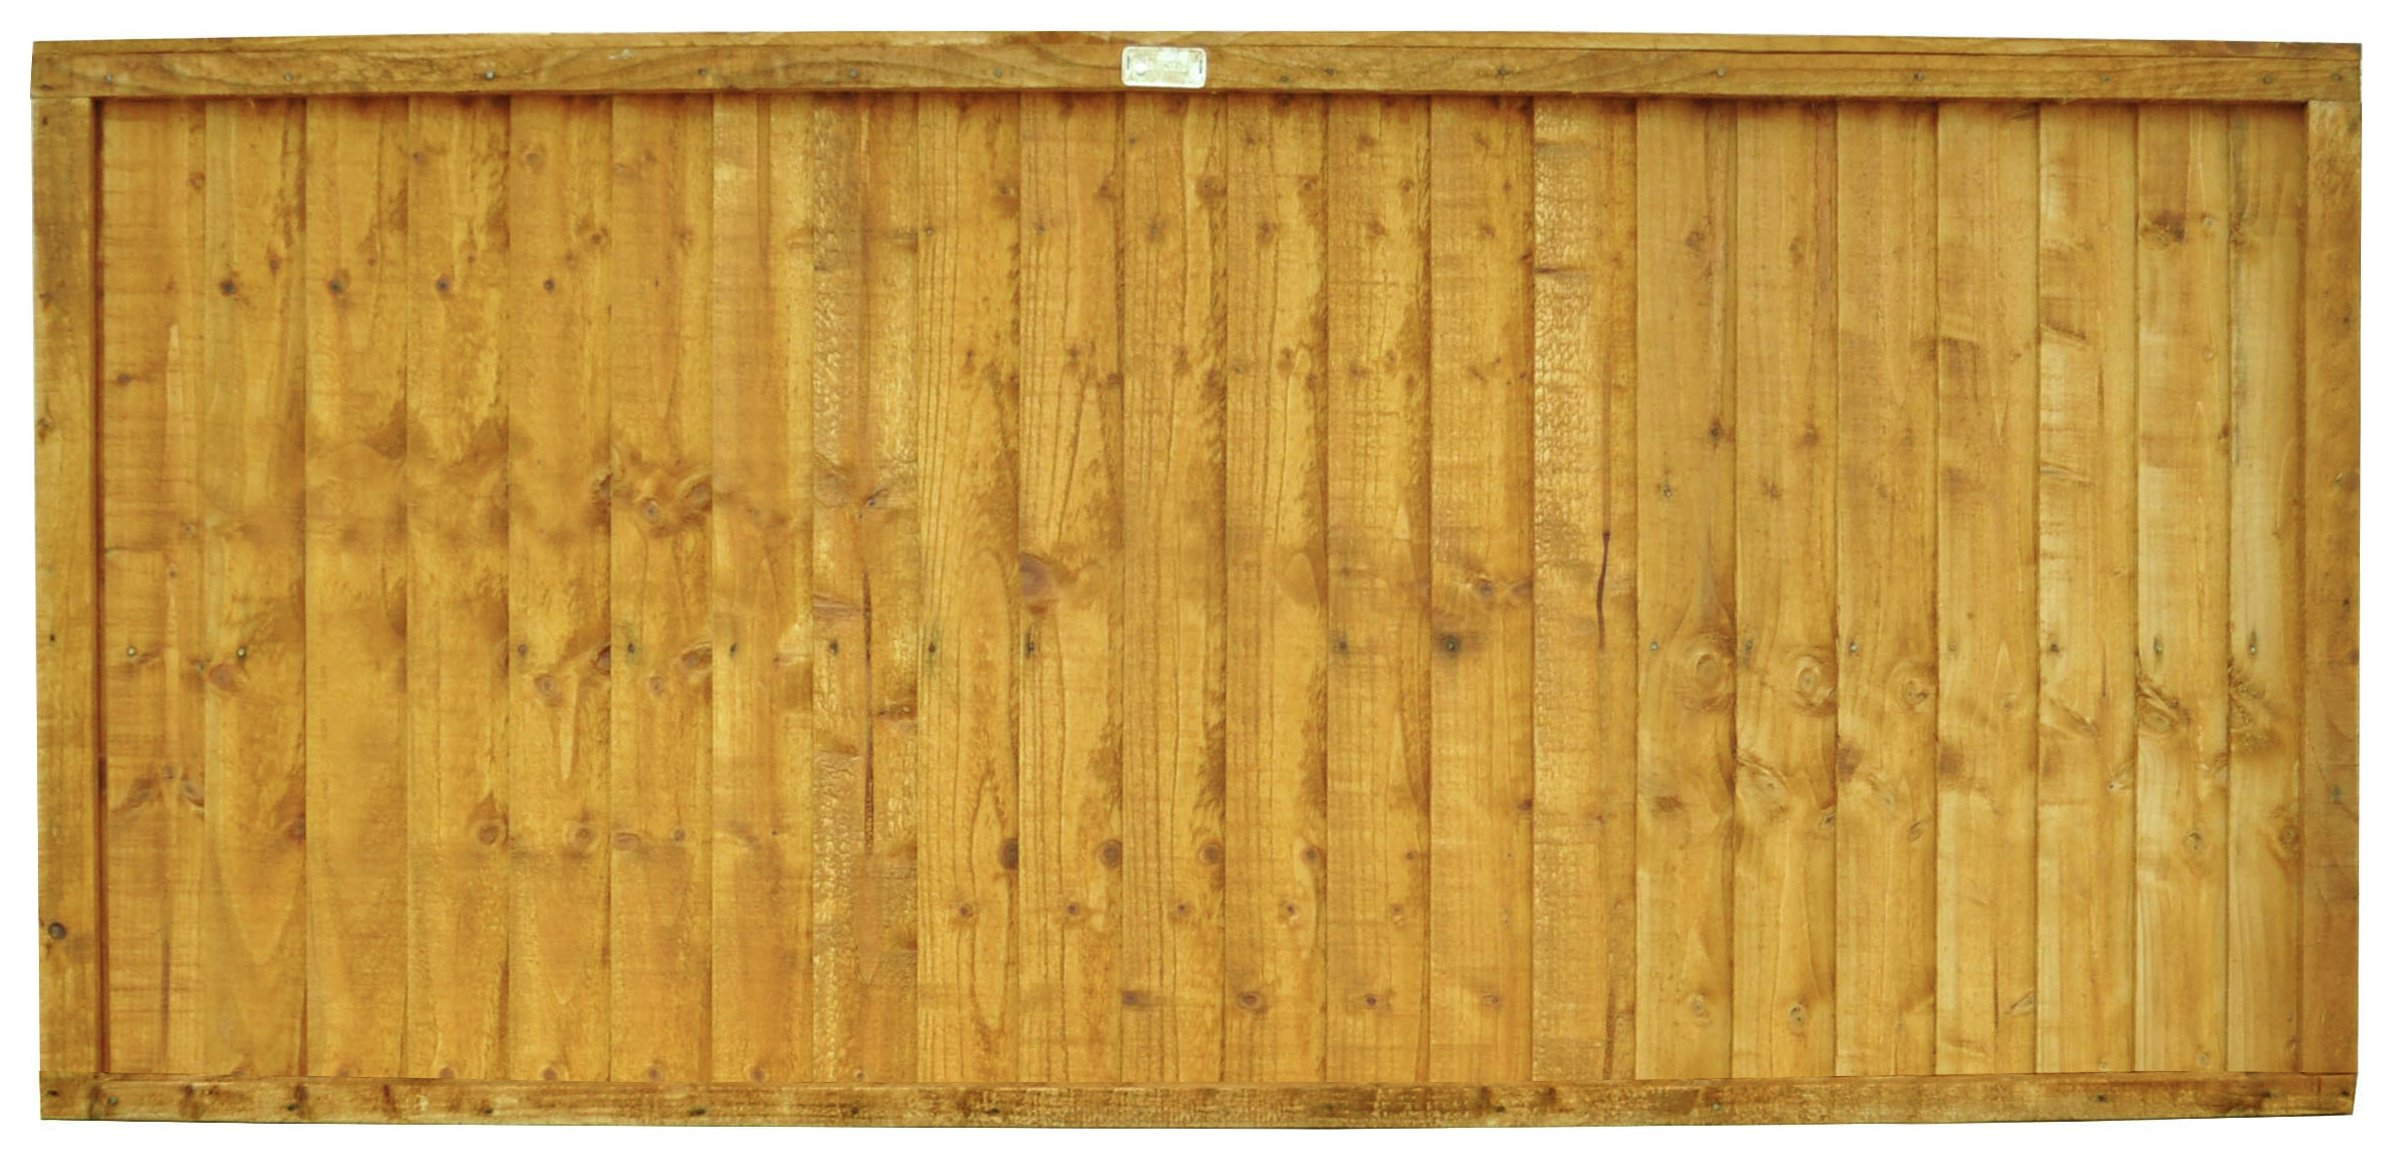 Forest 0.9m Closeboard Fence Panel - Pack of 4. lowest price